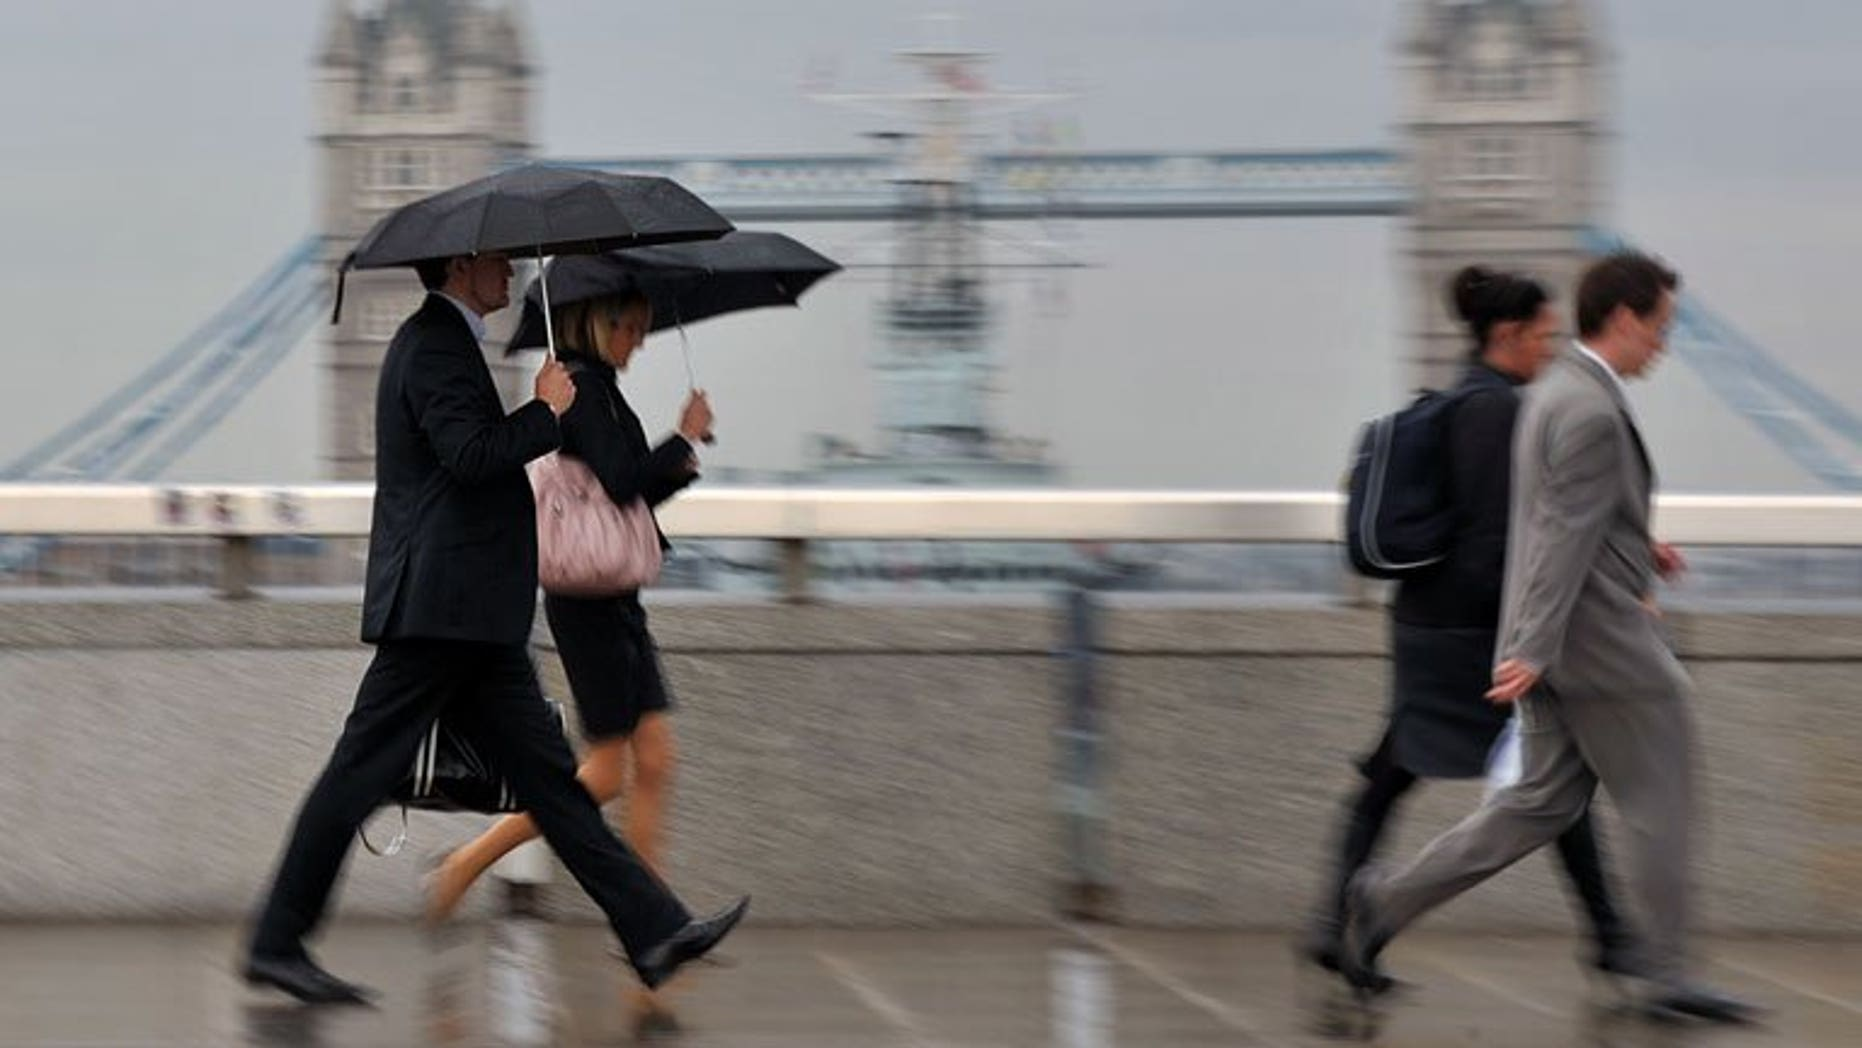 City workers walk over London Bridge. London shares closed in negative territory on Monday with high gold prices offering traders some support while a string of uneven US earnings fuelled investor caution over economic activity, dealers said.